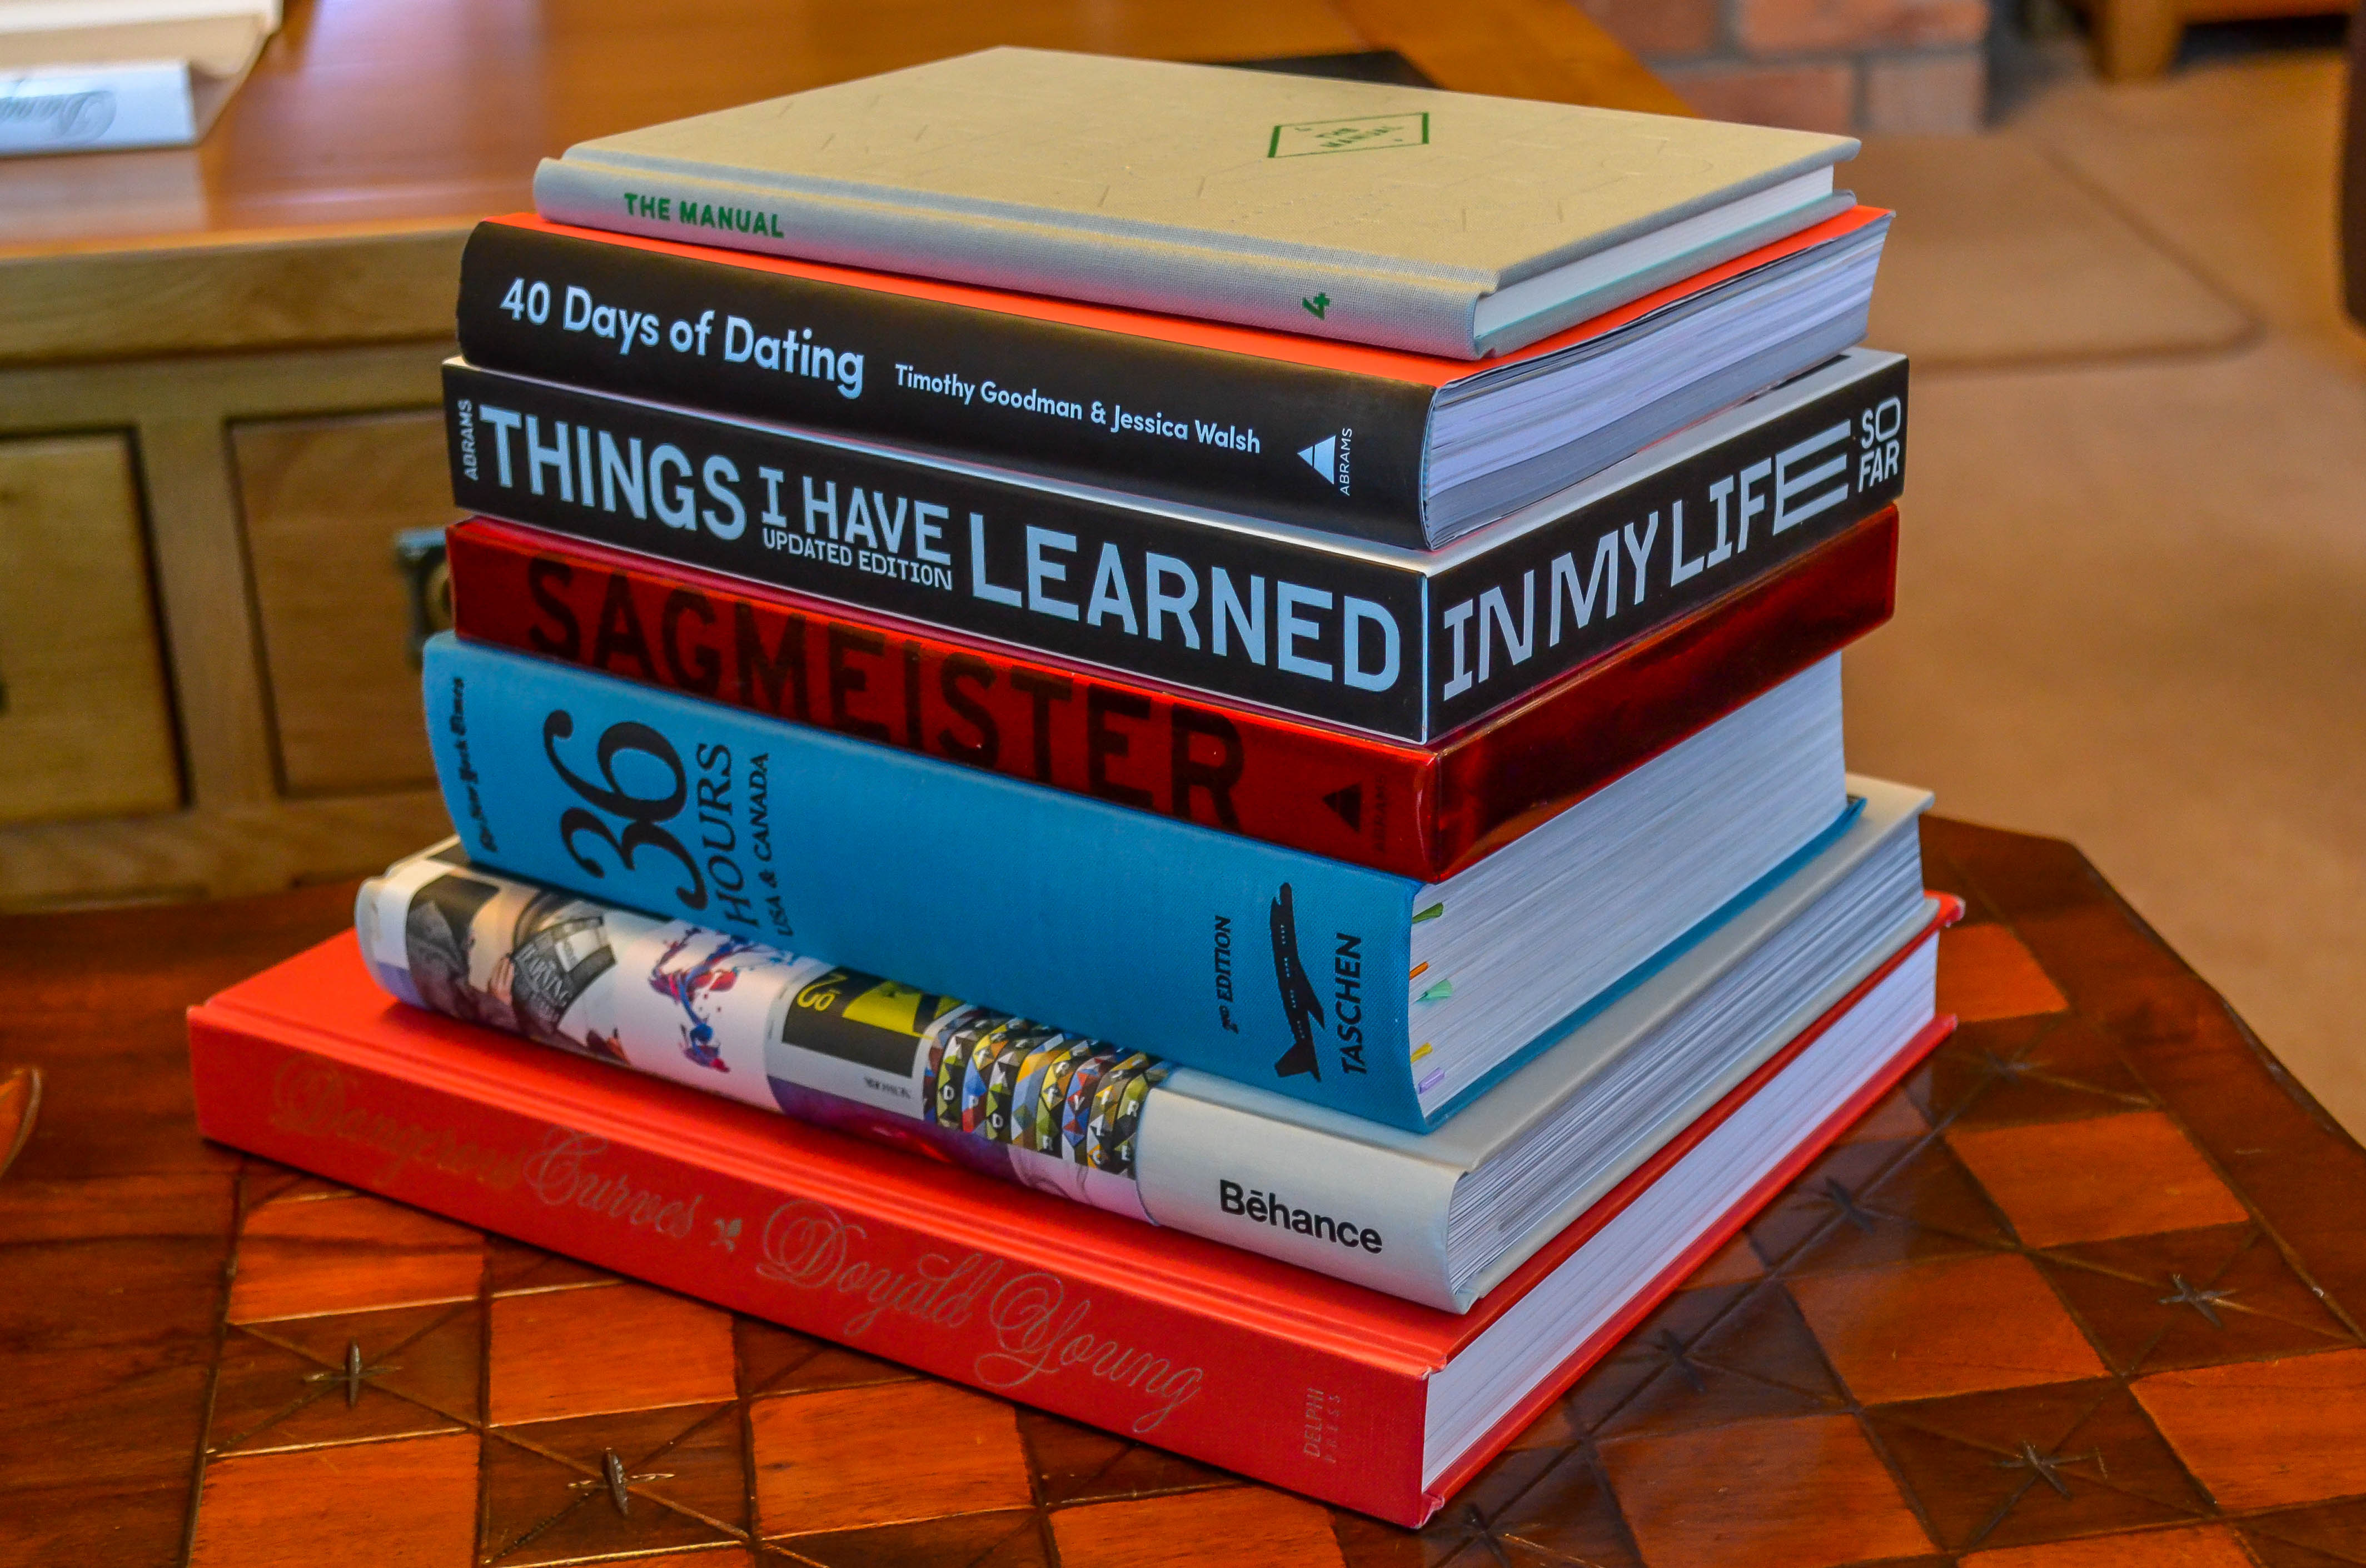 Good Coffee Table Books Best Coffee Table Books For Designers Featuring Behance Sagmeister